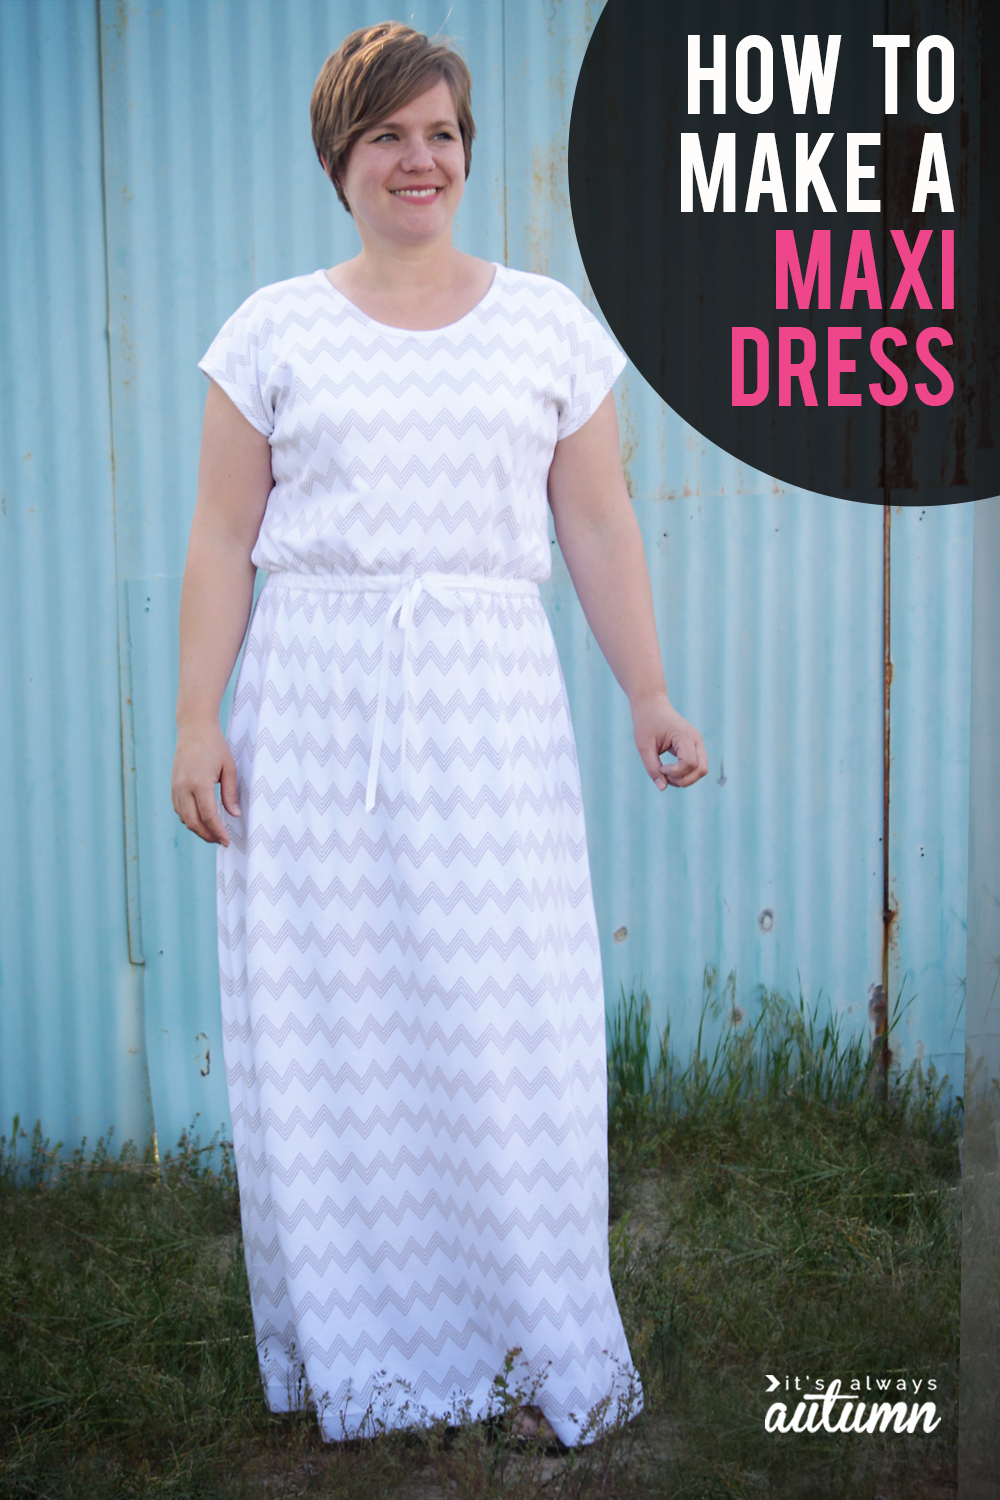 how to sew a maxi dress | easy instructions to make a maxi dress